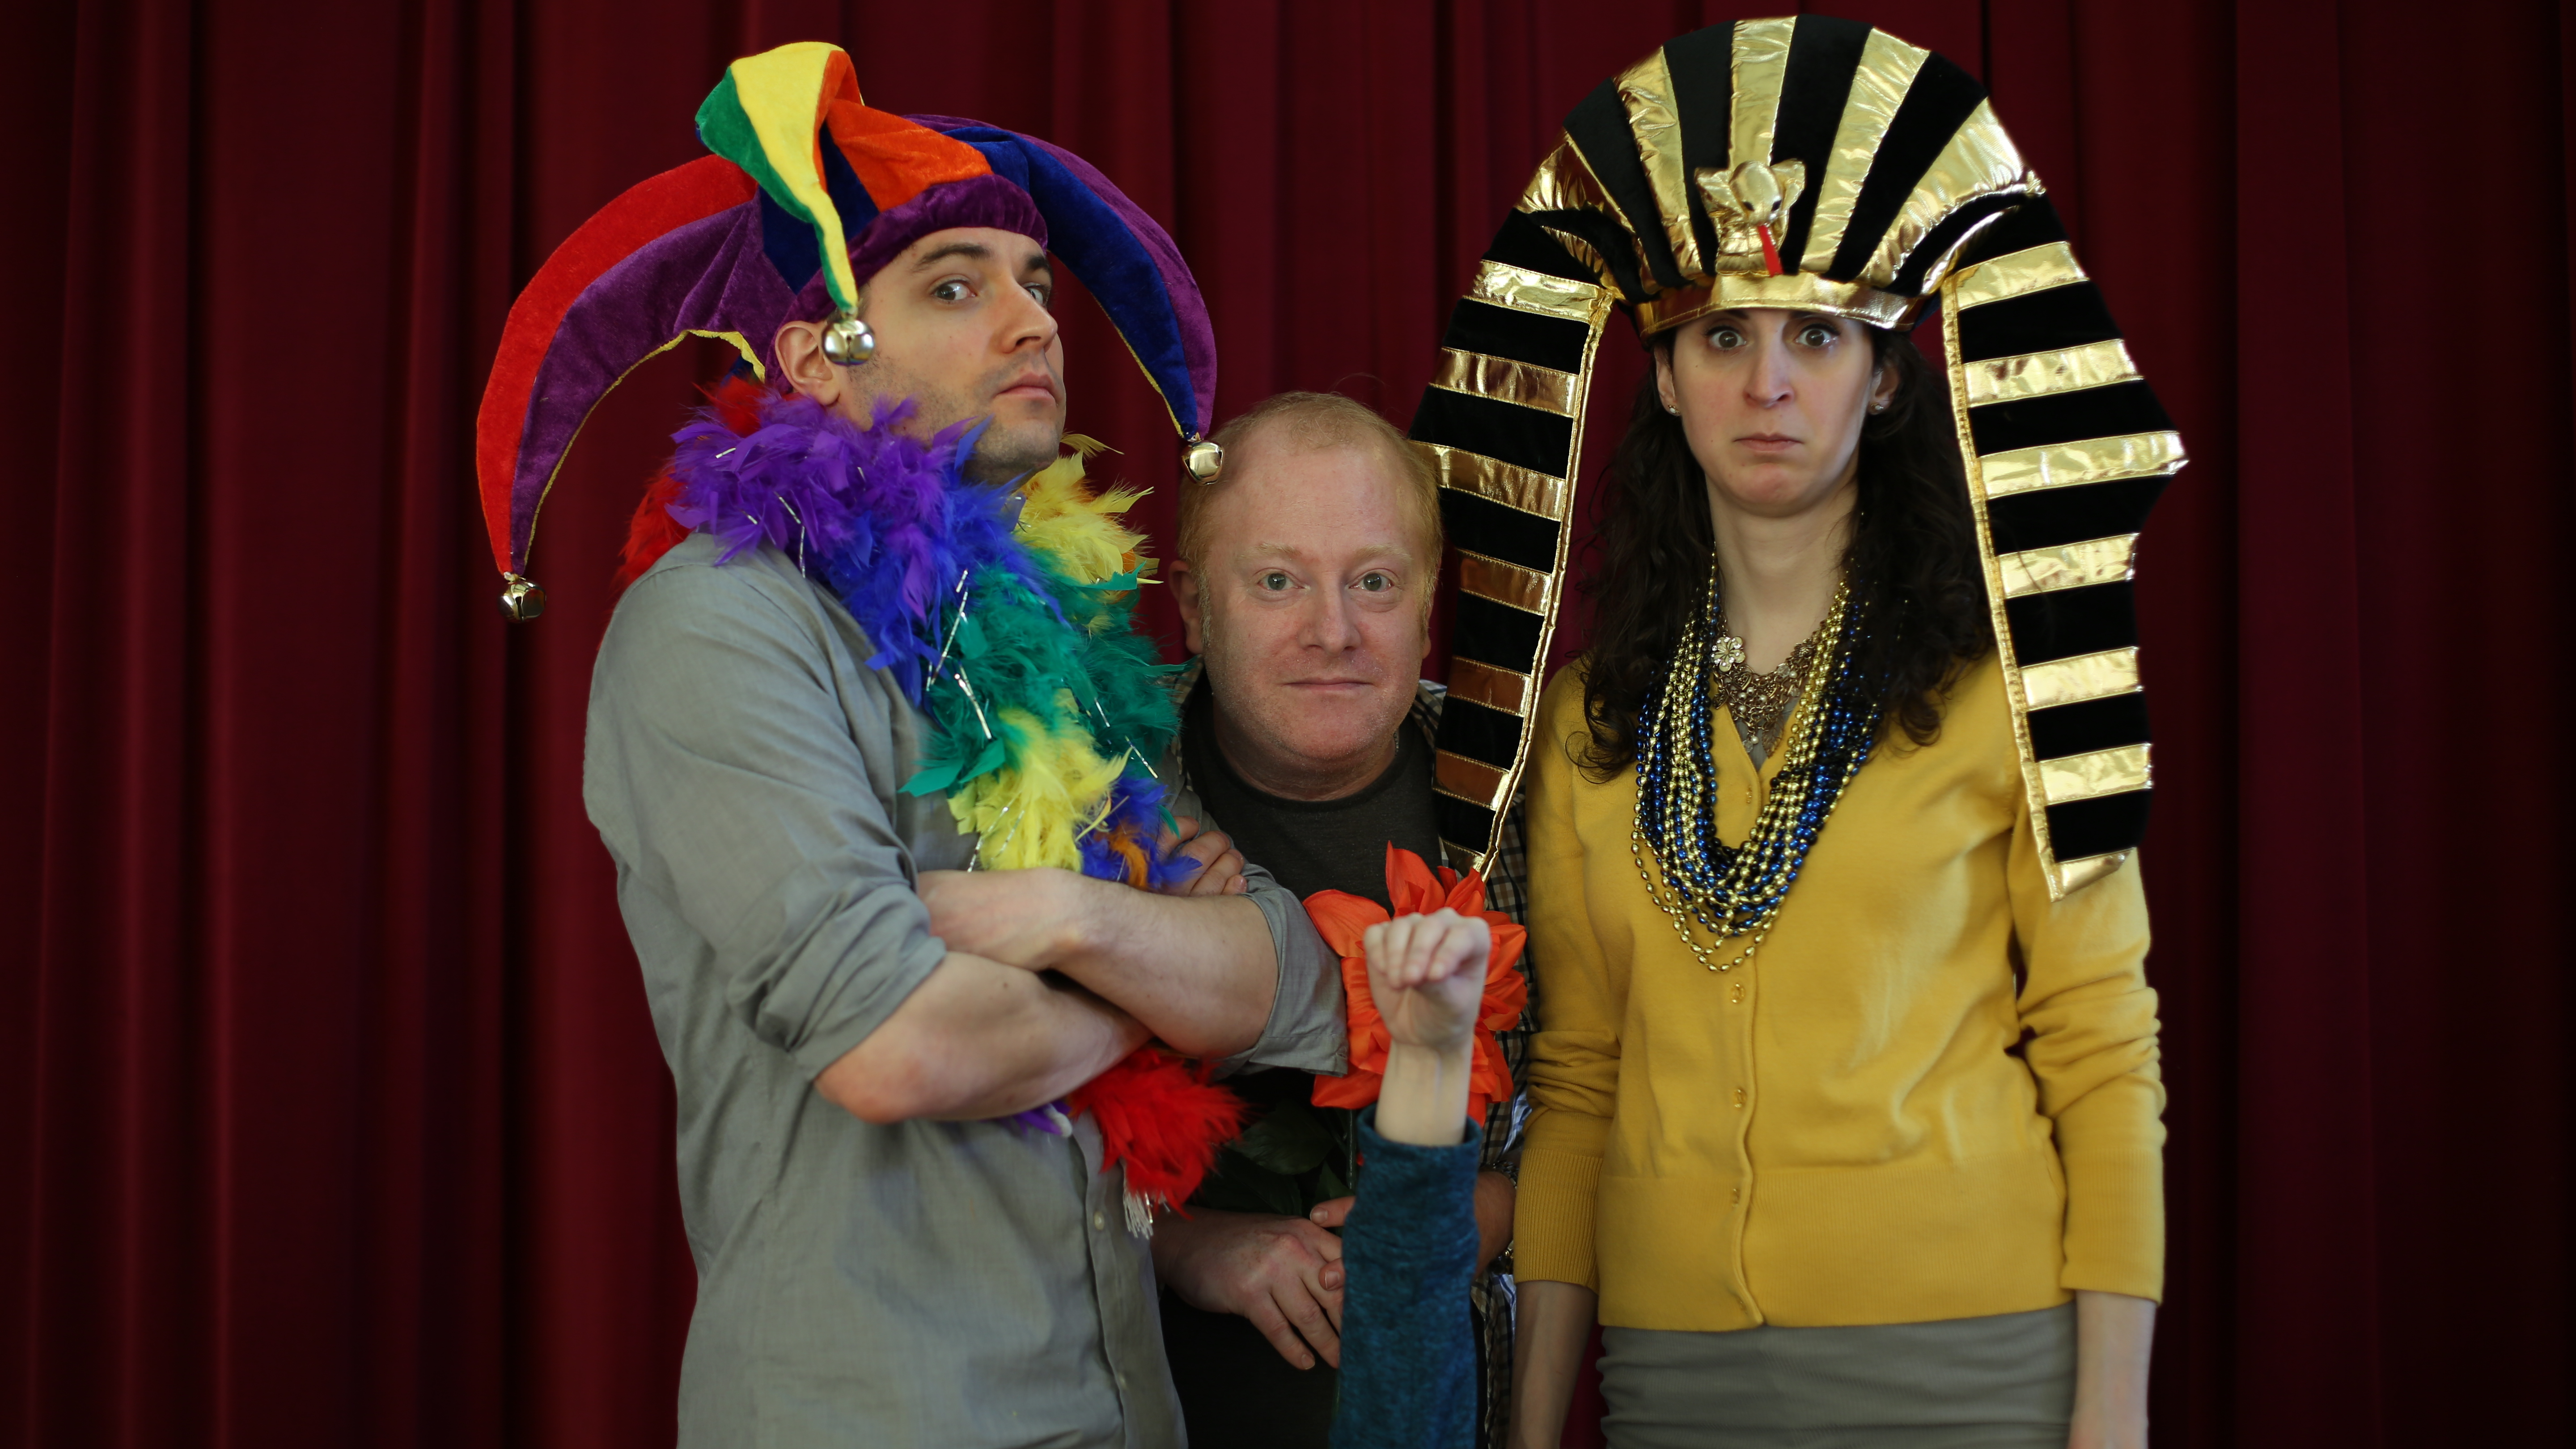 Marcus, Mitch, Tracey & Puppet Hand